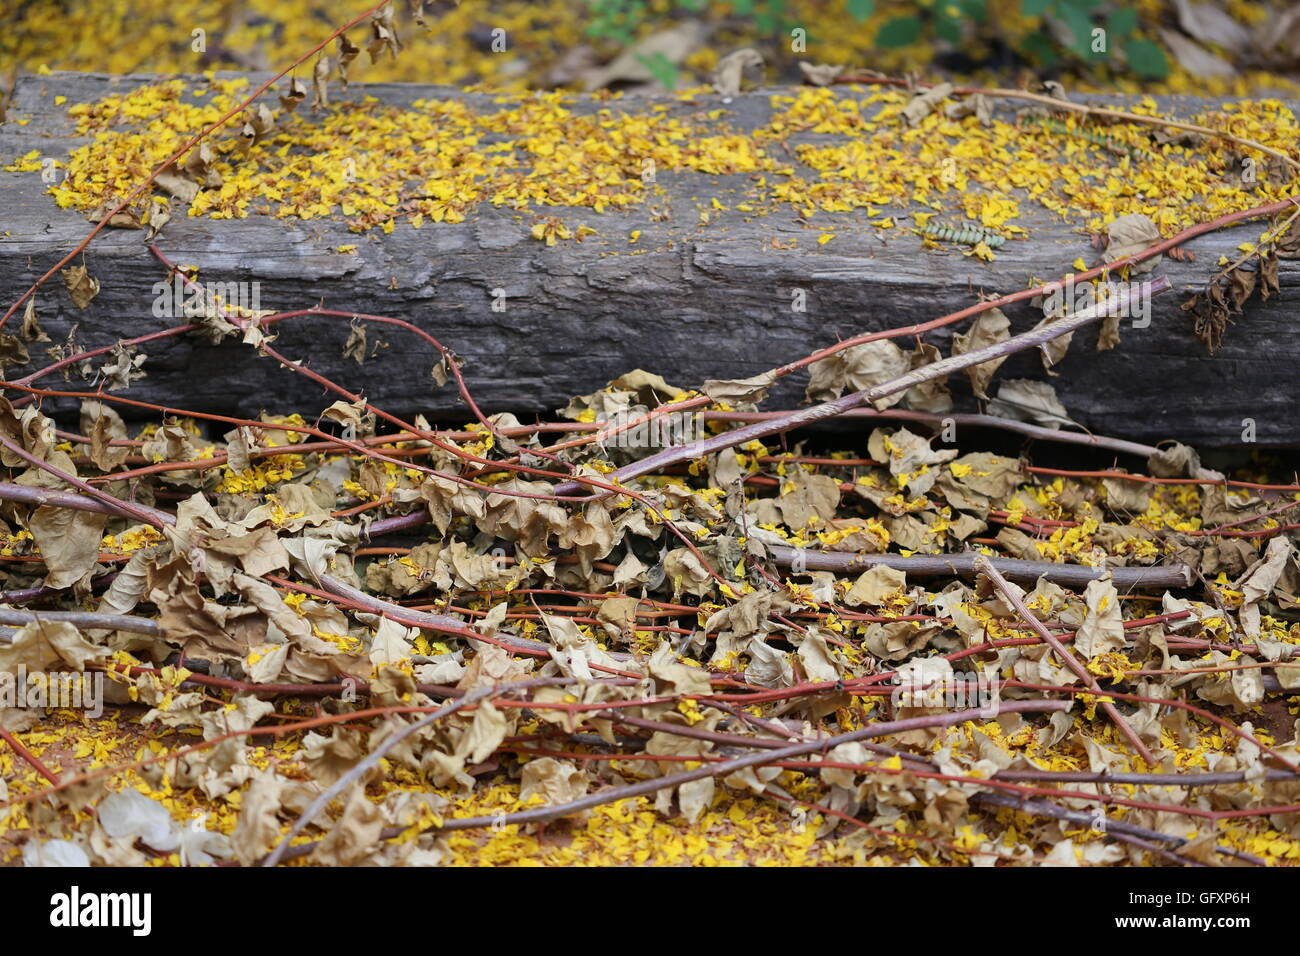 Trimmed and Dried Leaves and Flowers. Dry stalks of Bogonbilih with yellow flowers of Poinciana tree in a heap near - Stock Image